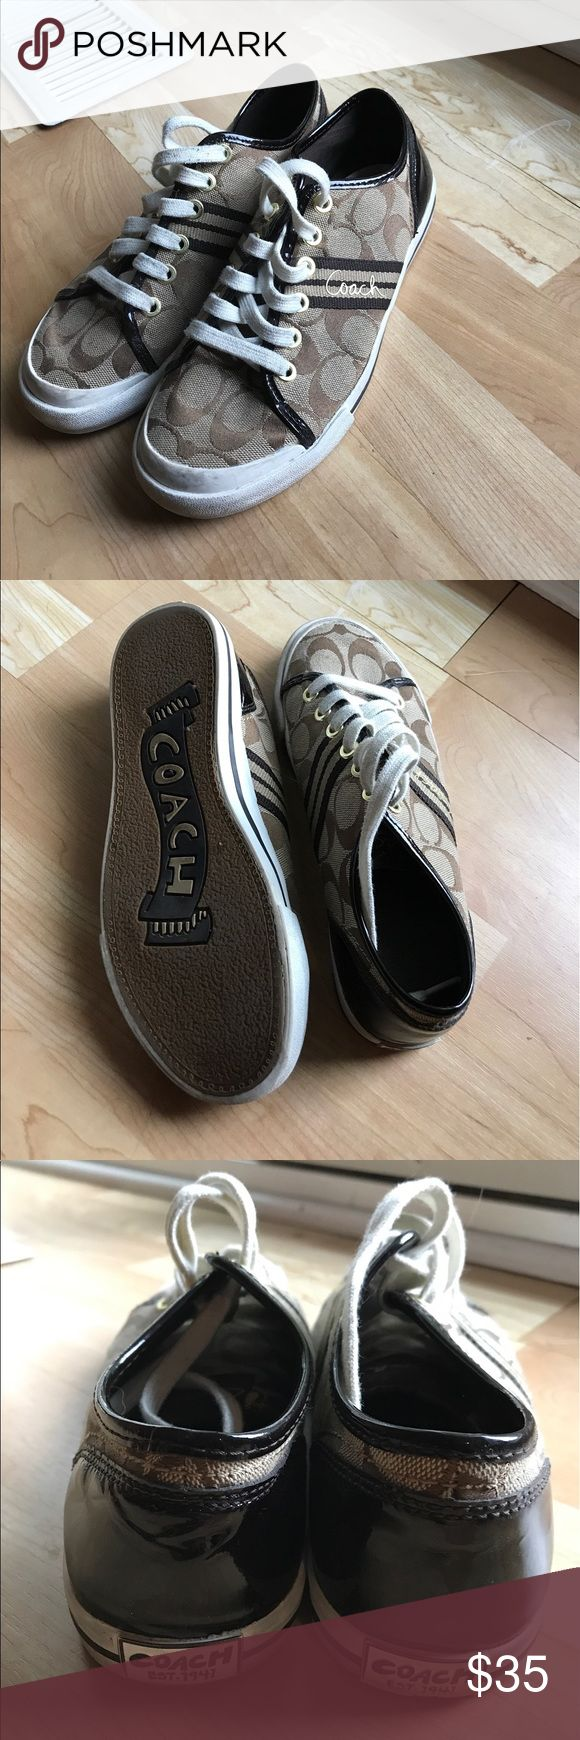 Coach Tennis Shoes Authentic Coach tennis shoes. Size 7. Very good condition, only worn a handful of times. Coach Shoes Sneakers